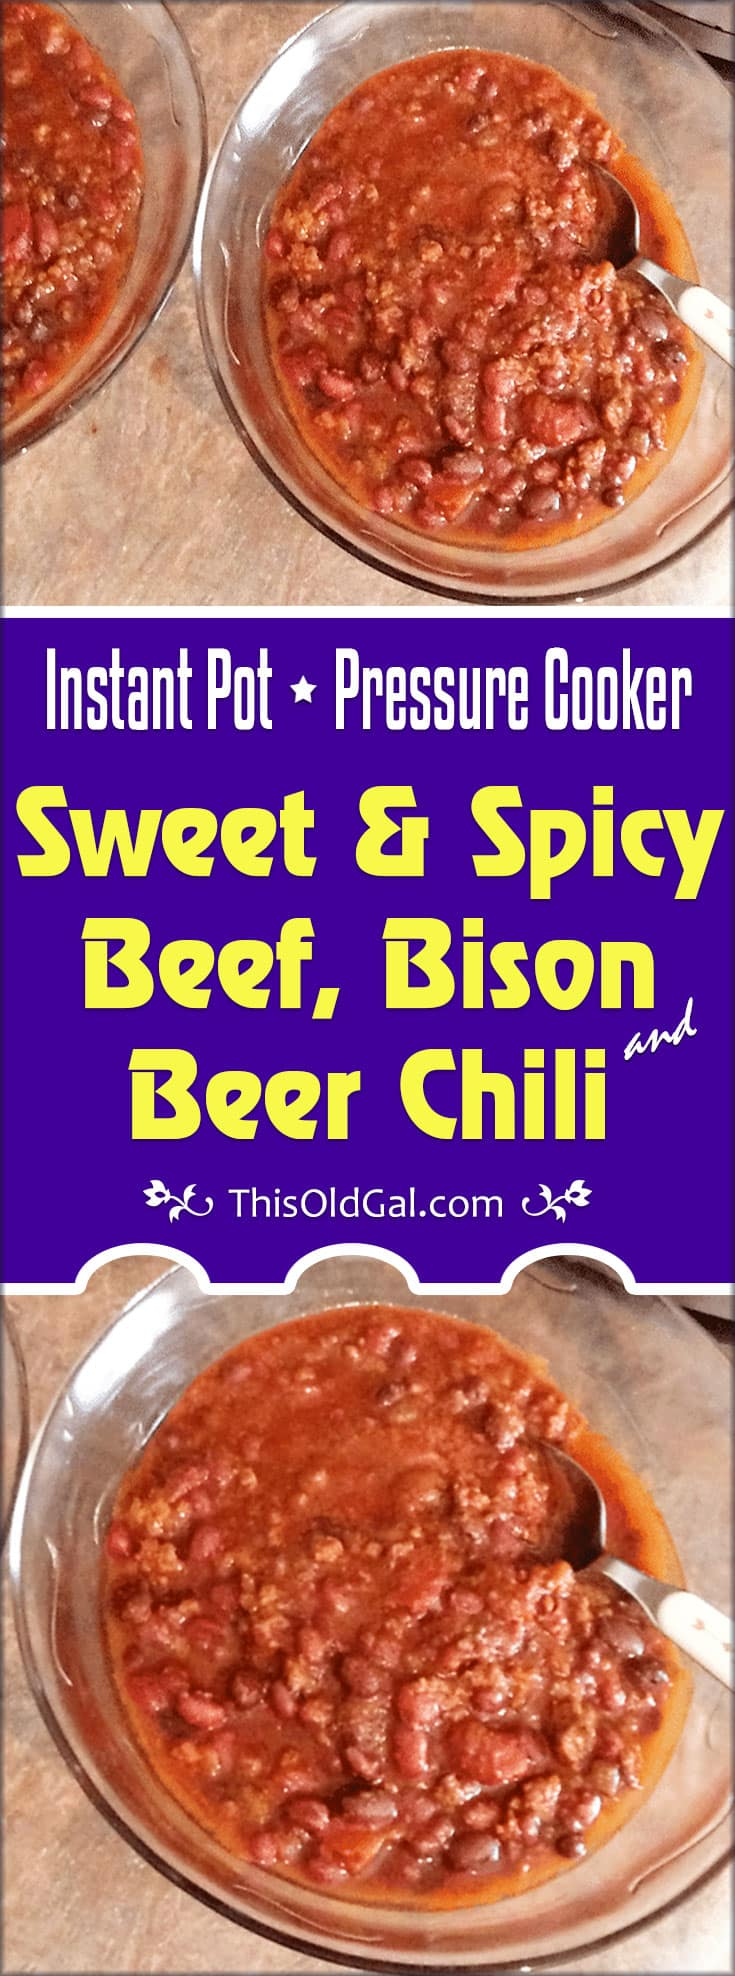 Pressure Cooker Sweet & Spicy Beef, Bison & Beer Chili